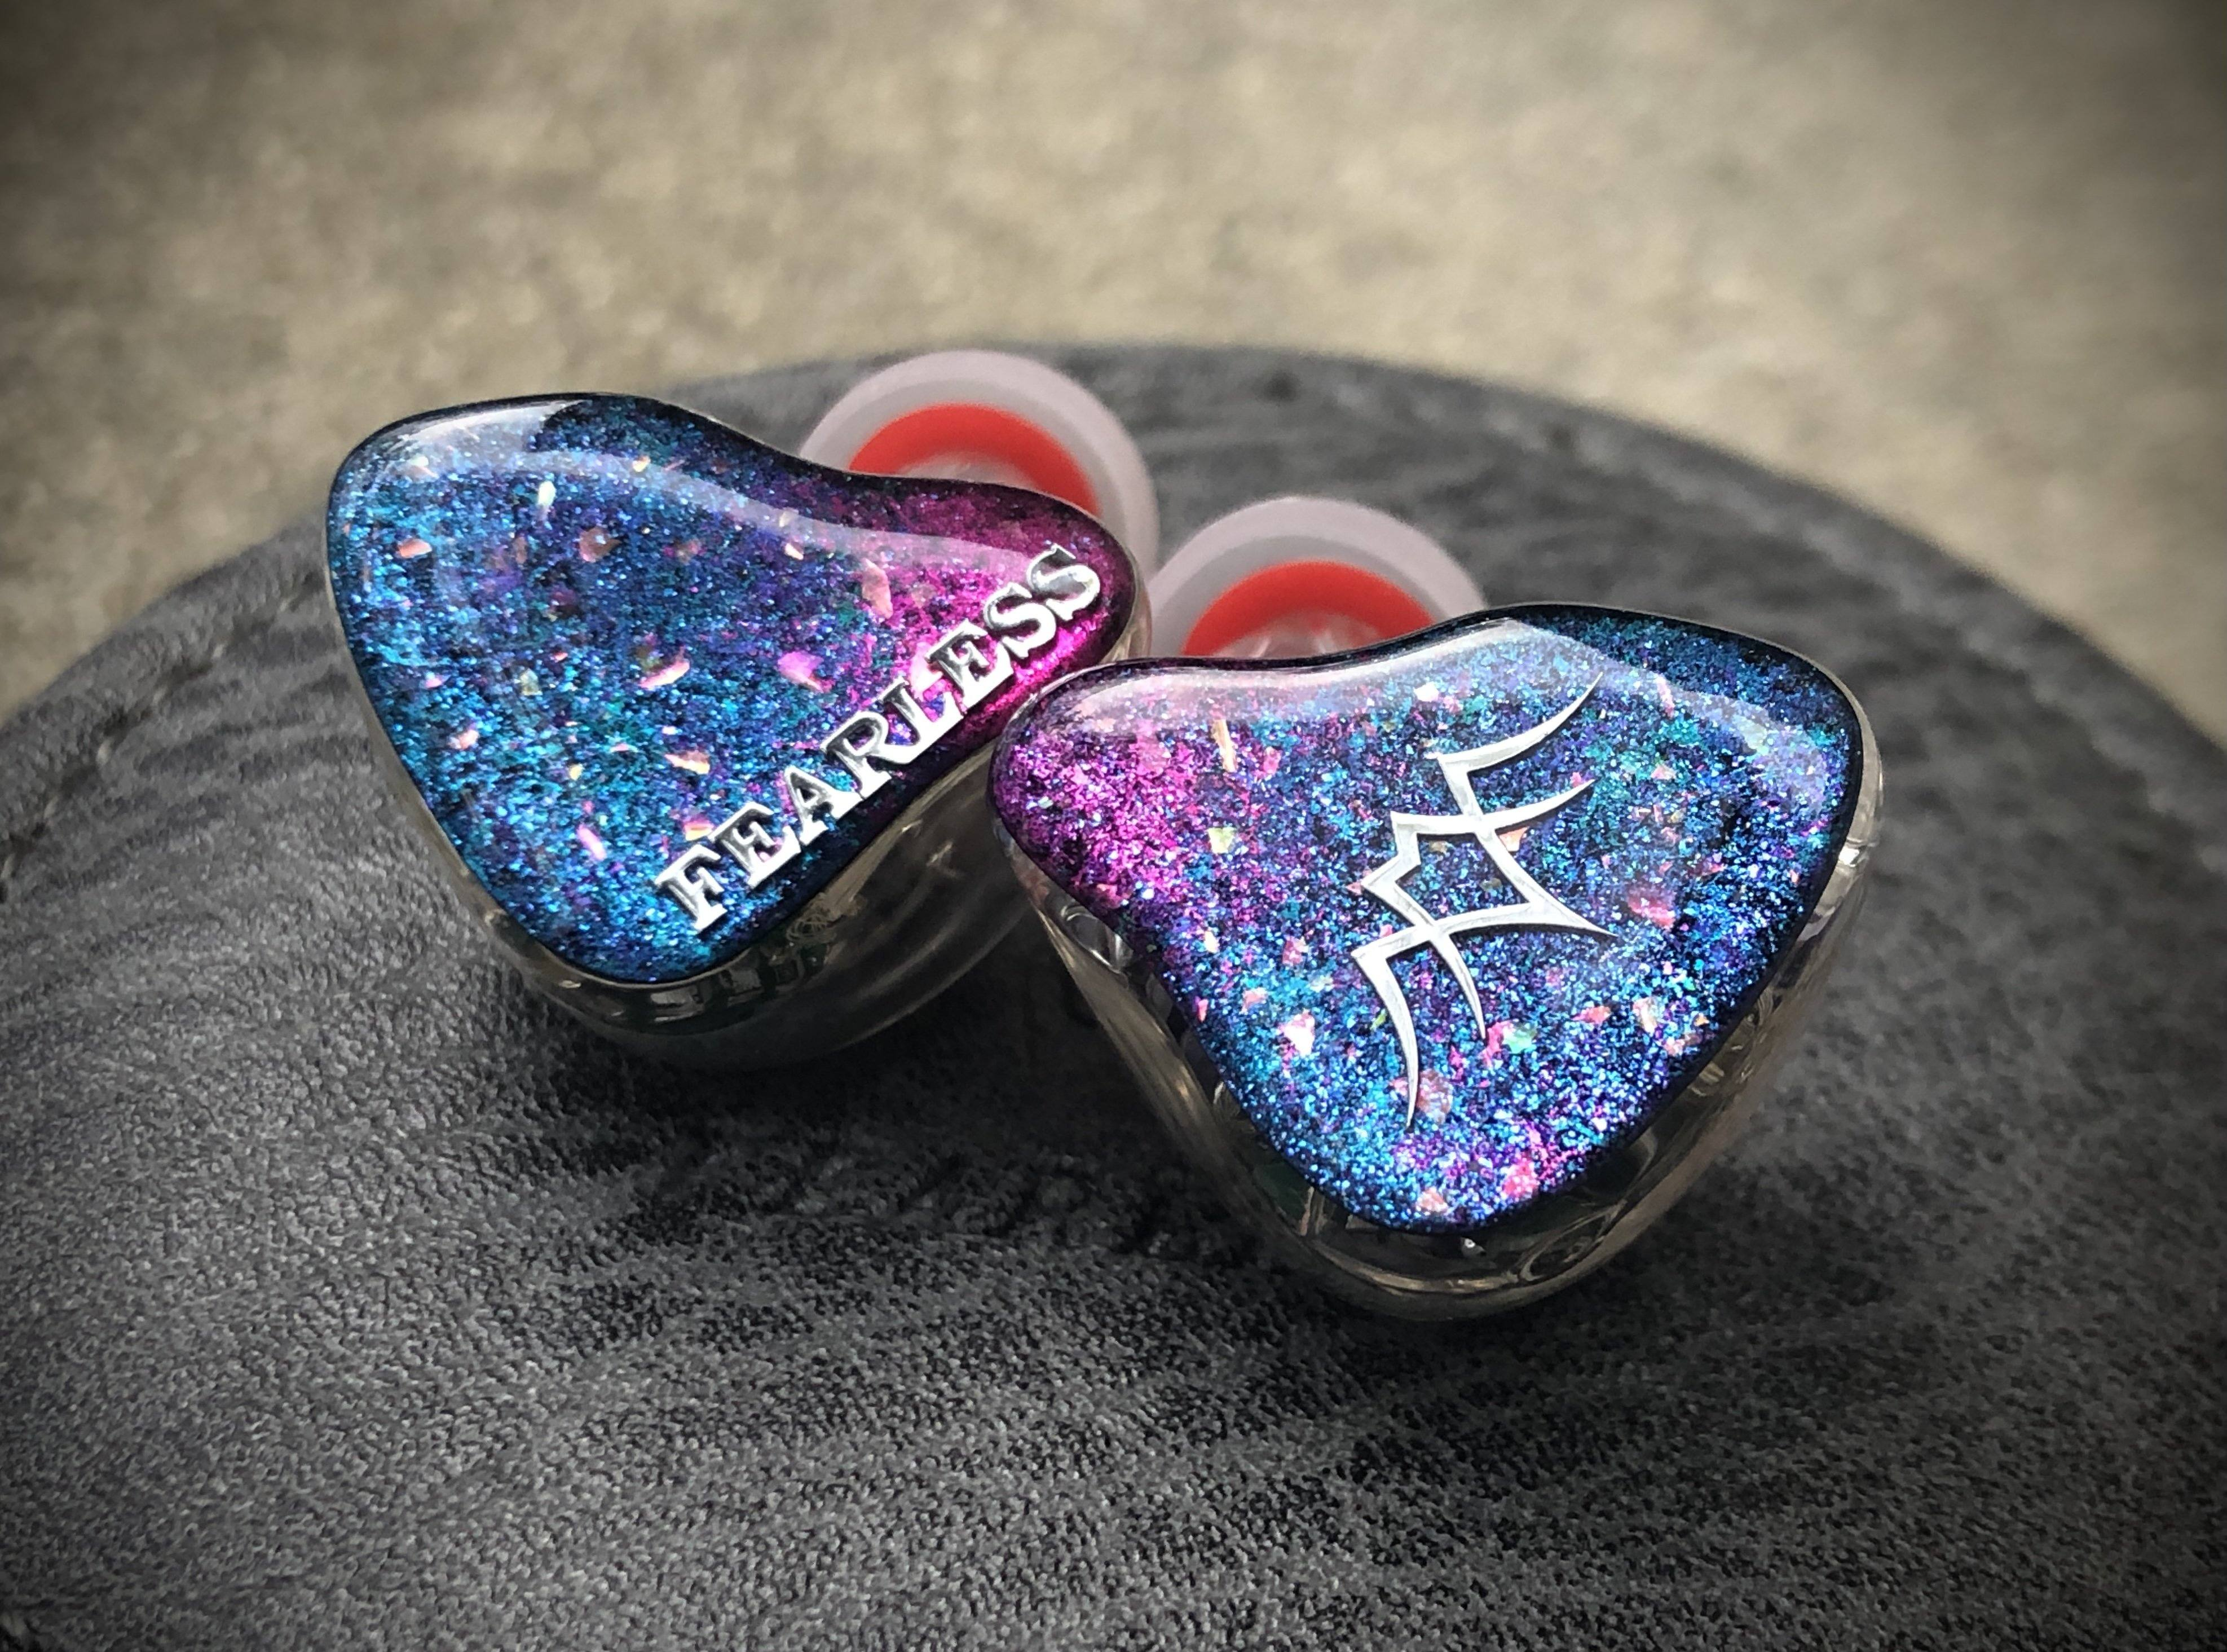 Fearless S8Z & Tequila Review: Duality of IEM